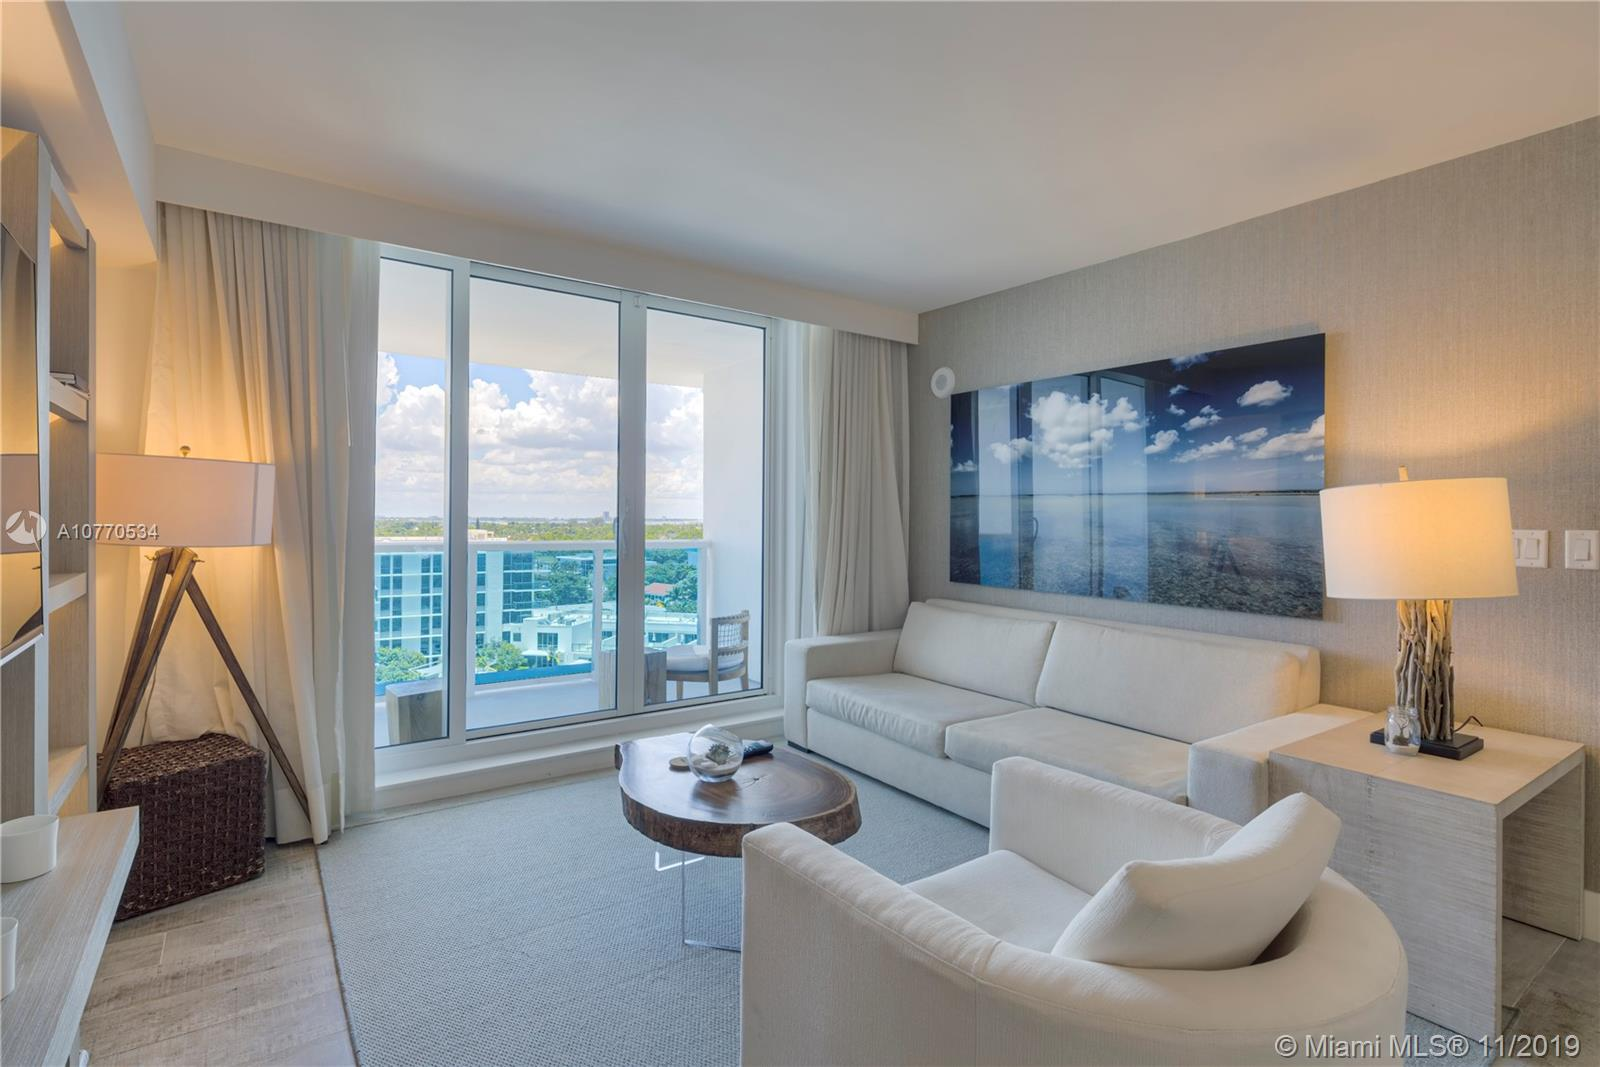 102  24 street #945 For Sale A10770534, FL